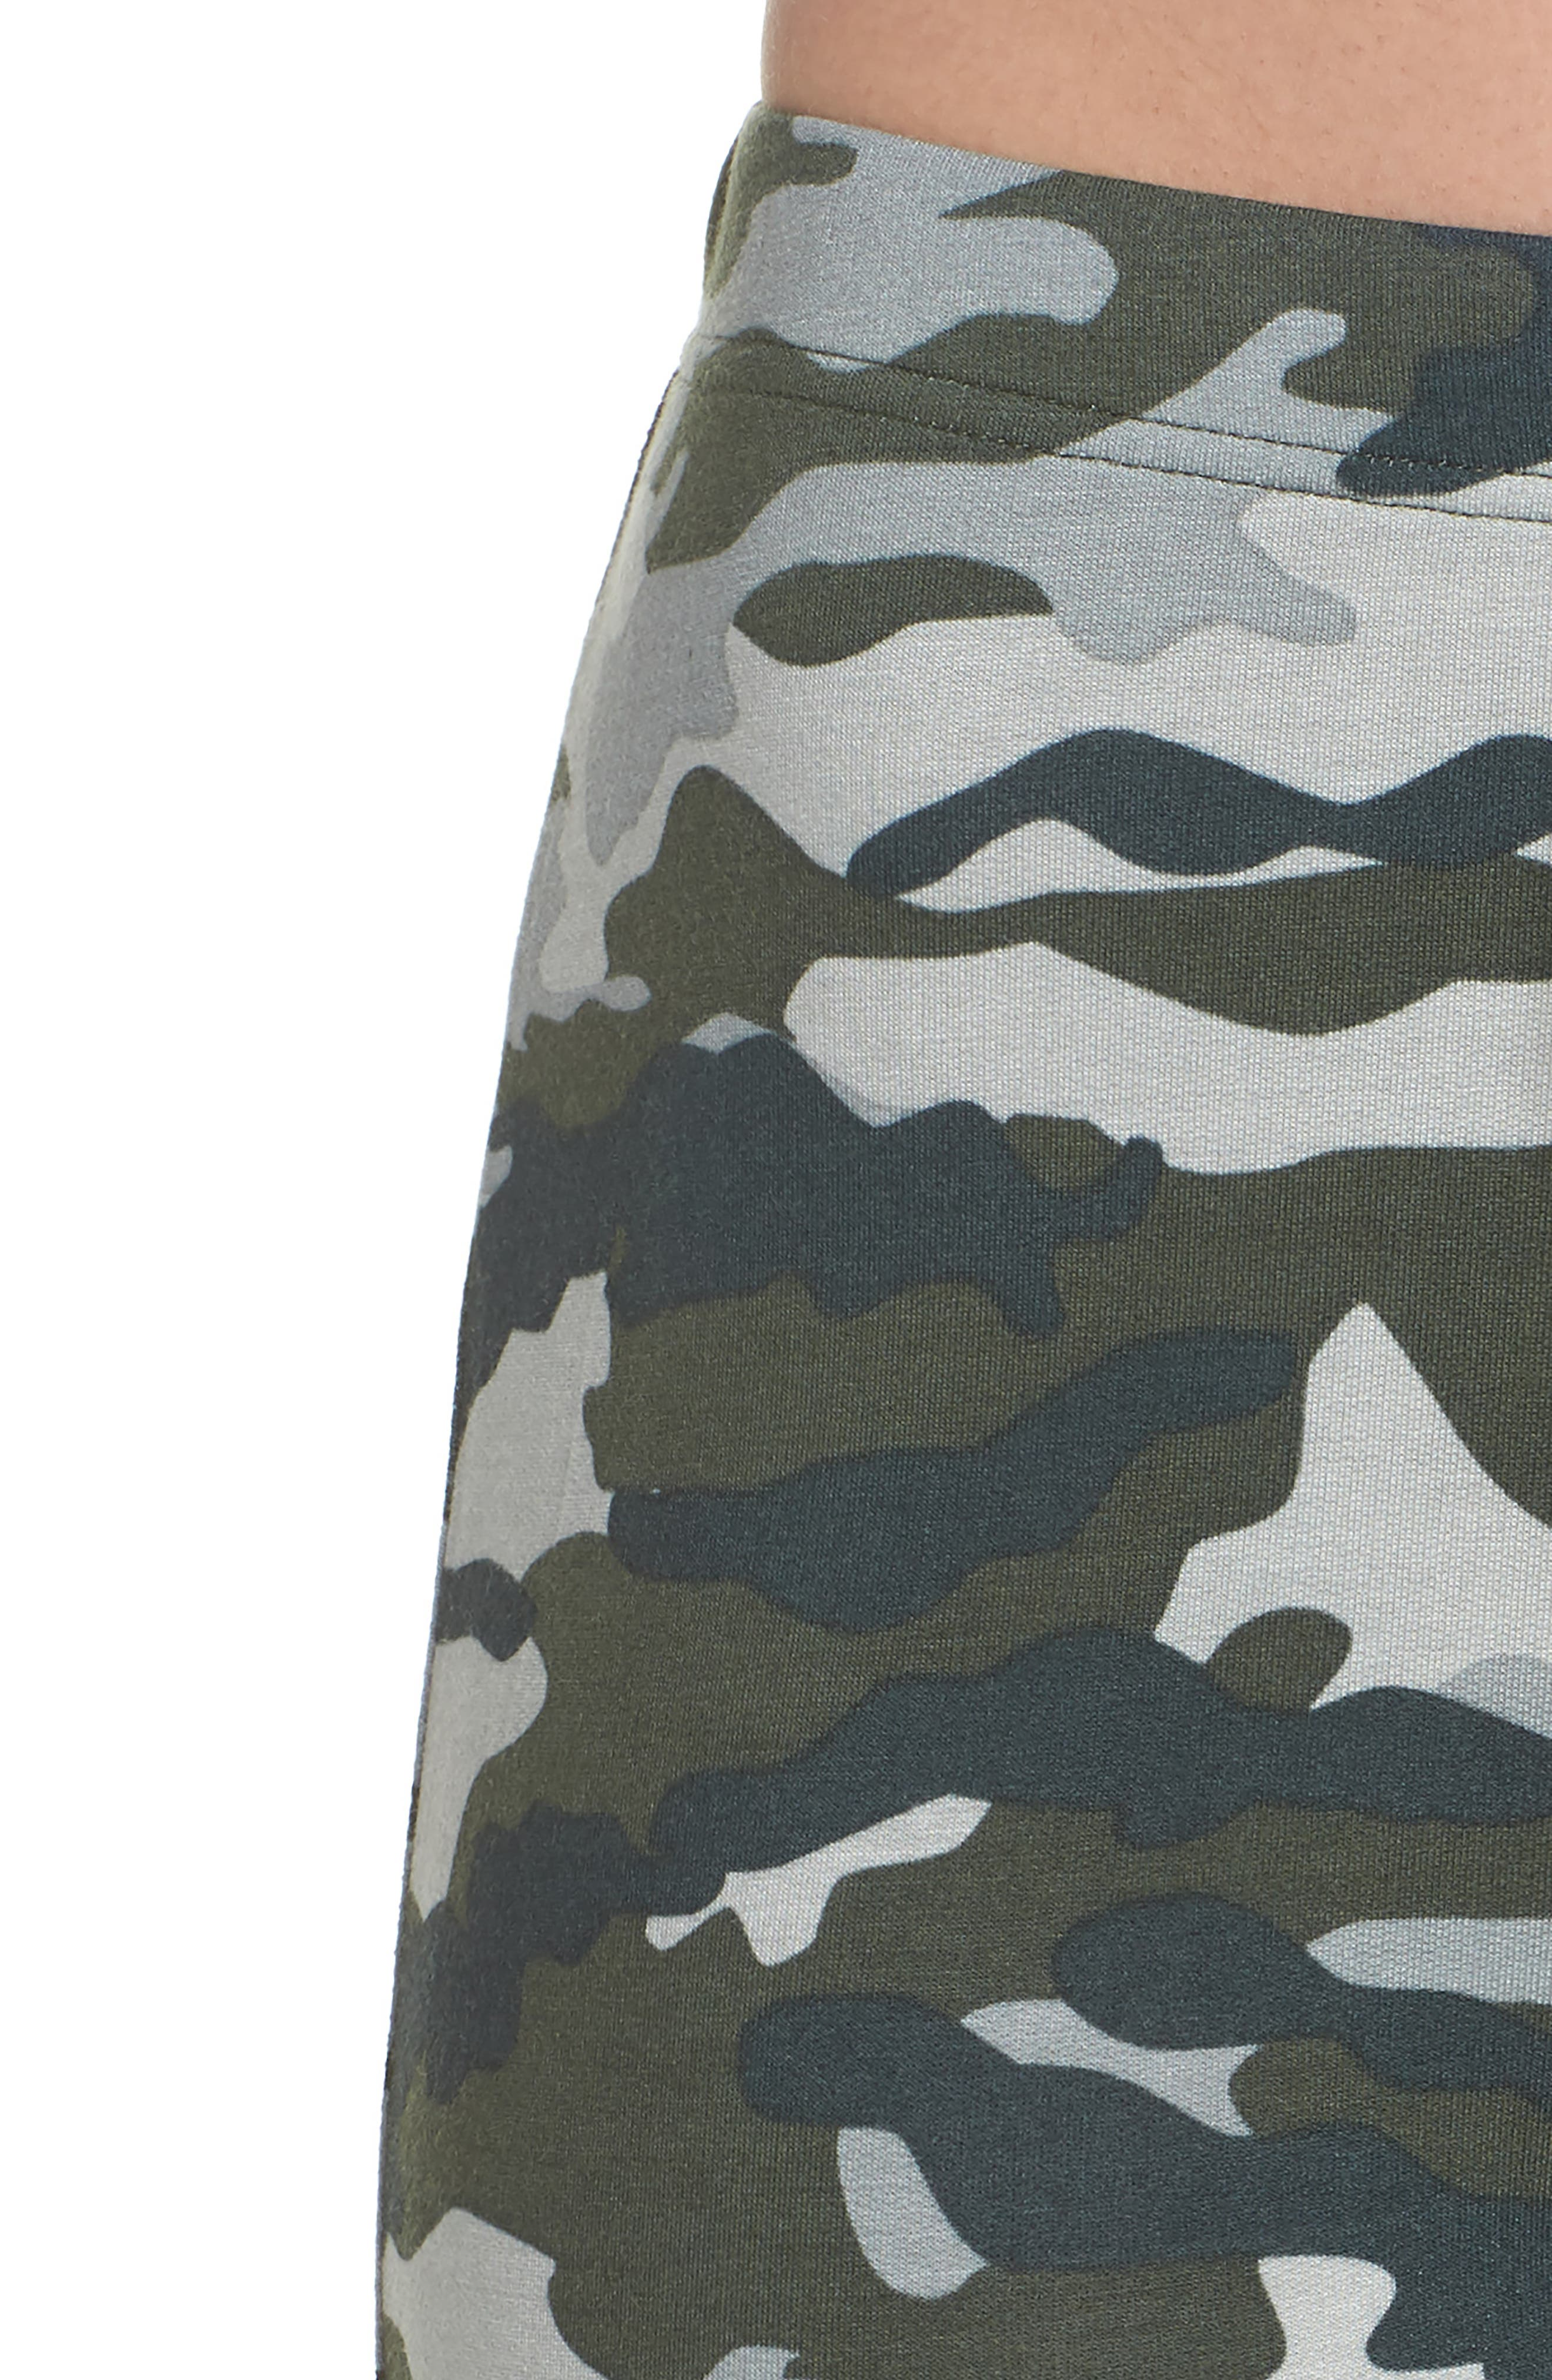 Kickin' It French Terry Lounge Pants,                             Alternate thumbnail 5, color,                             Army